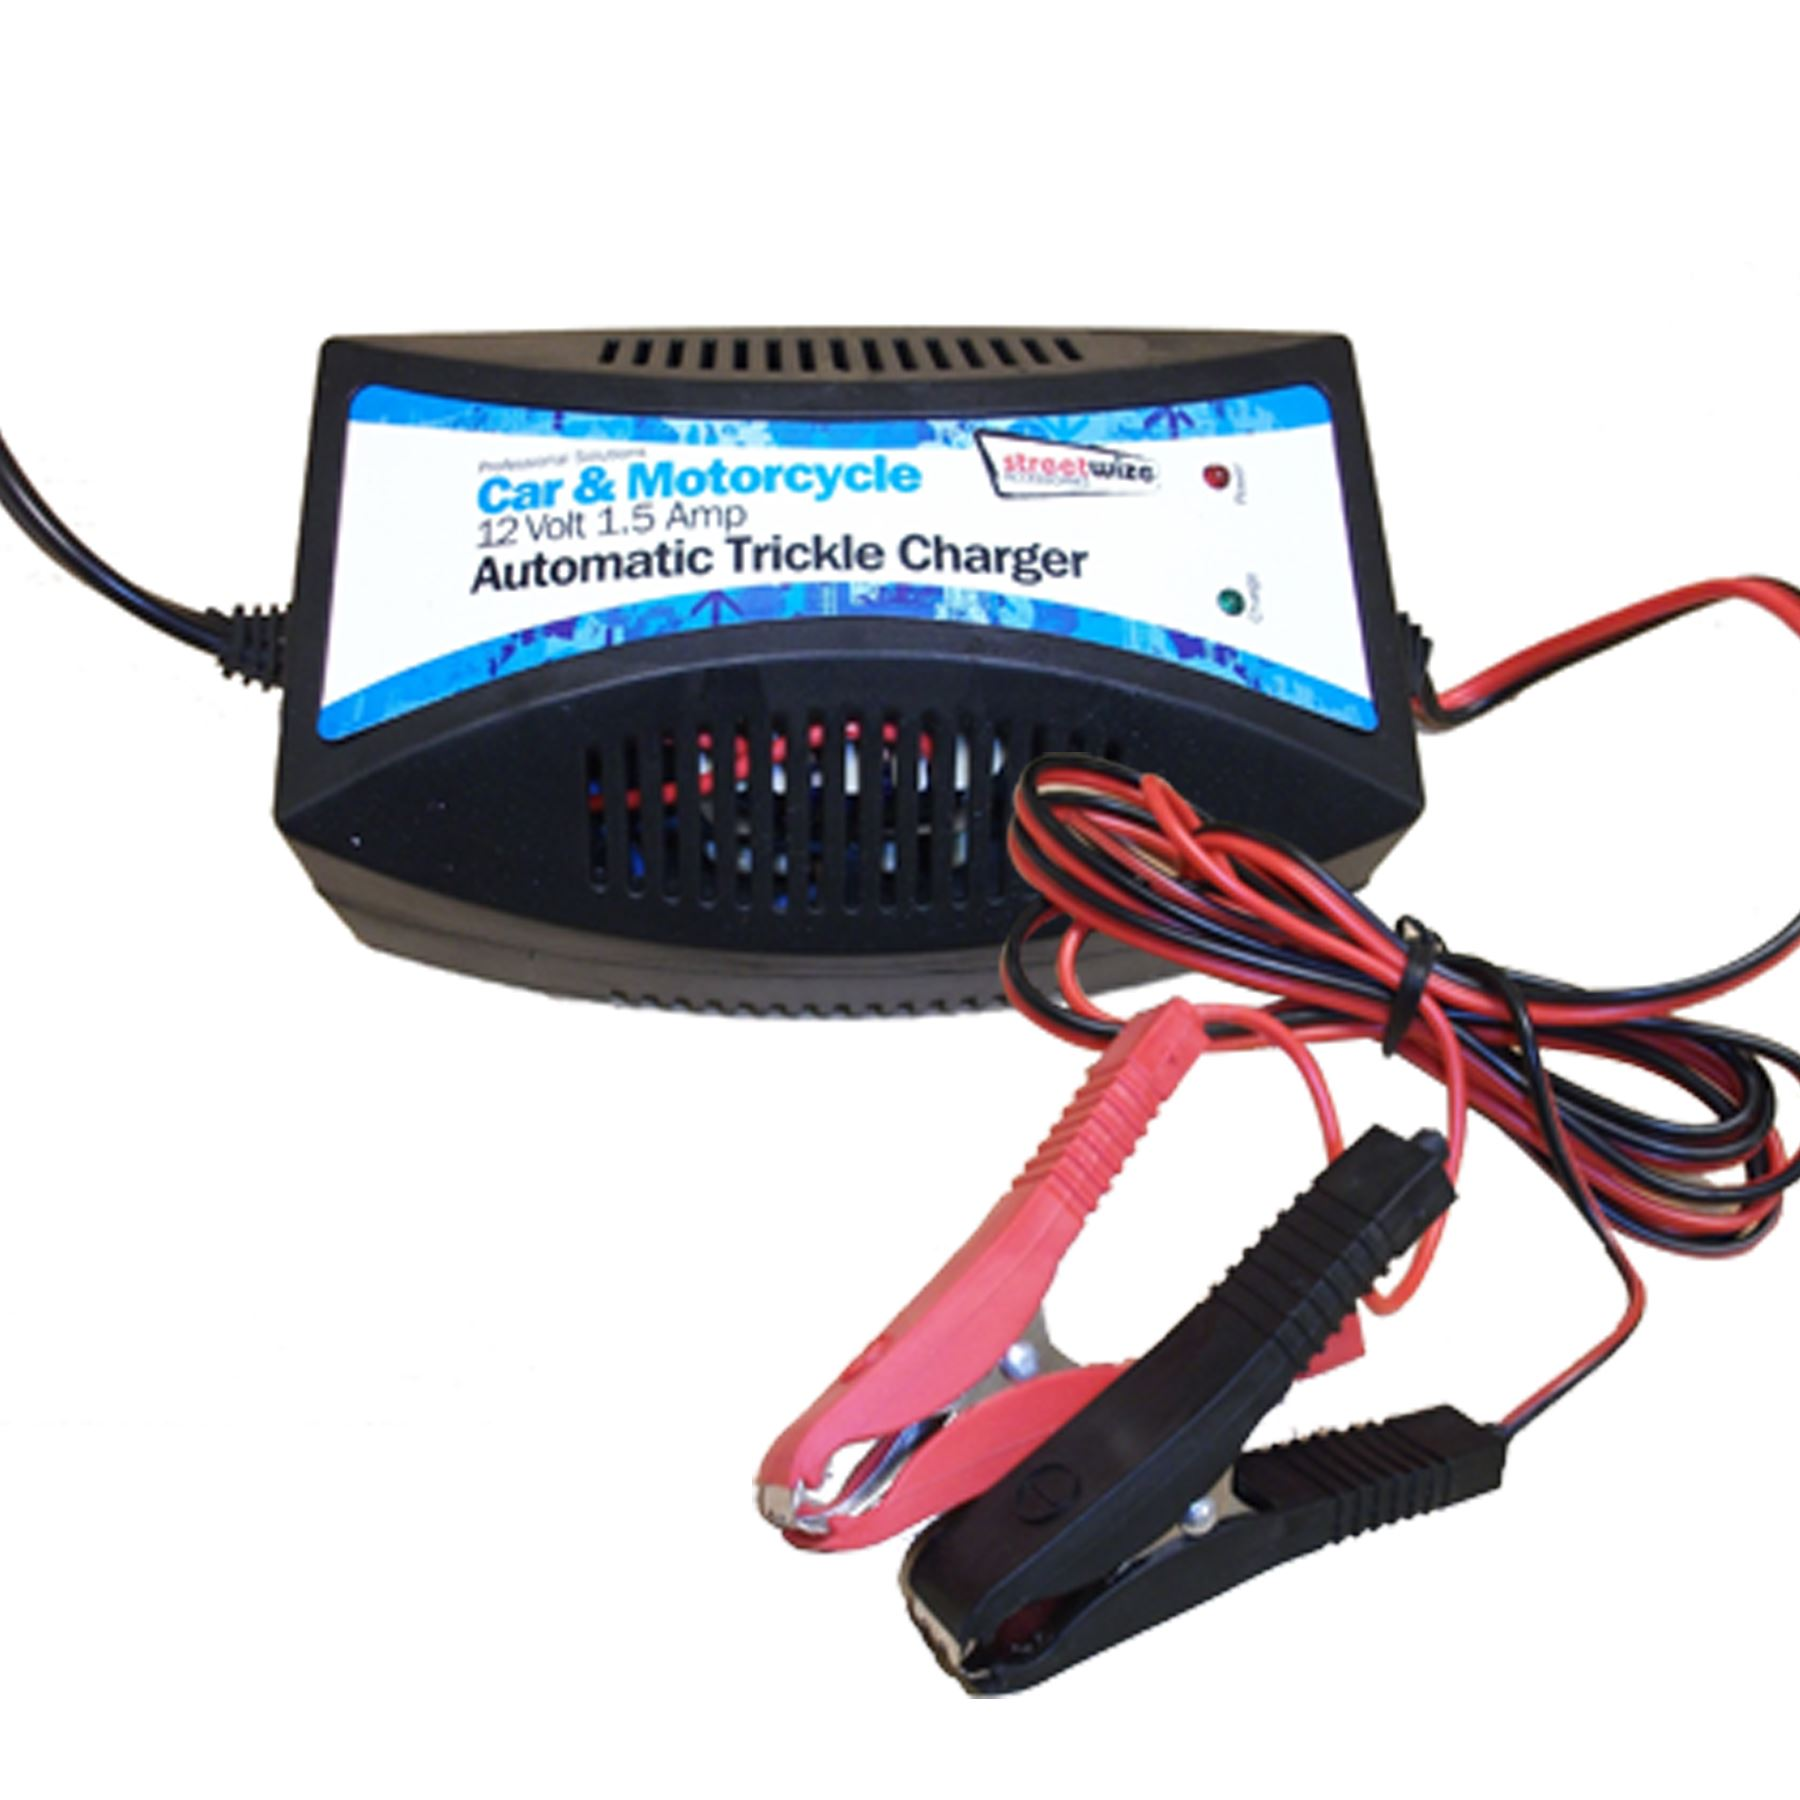 12v Trickle Battery Charger Electric Winter Car Motorcycle